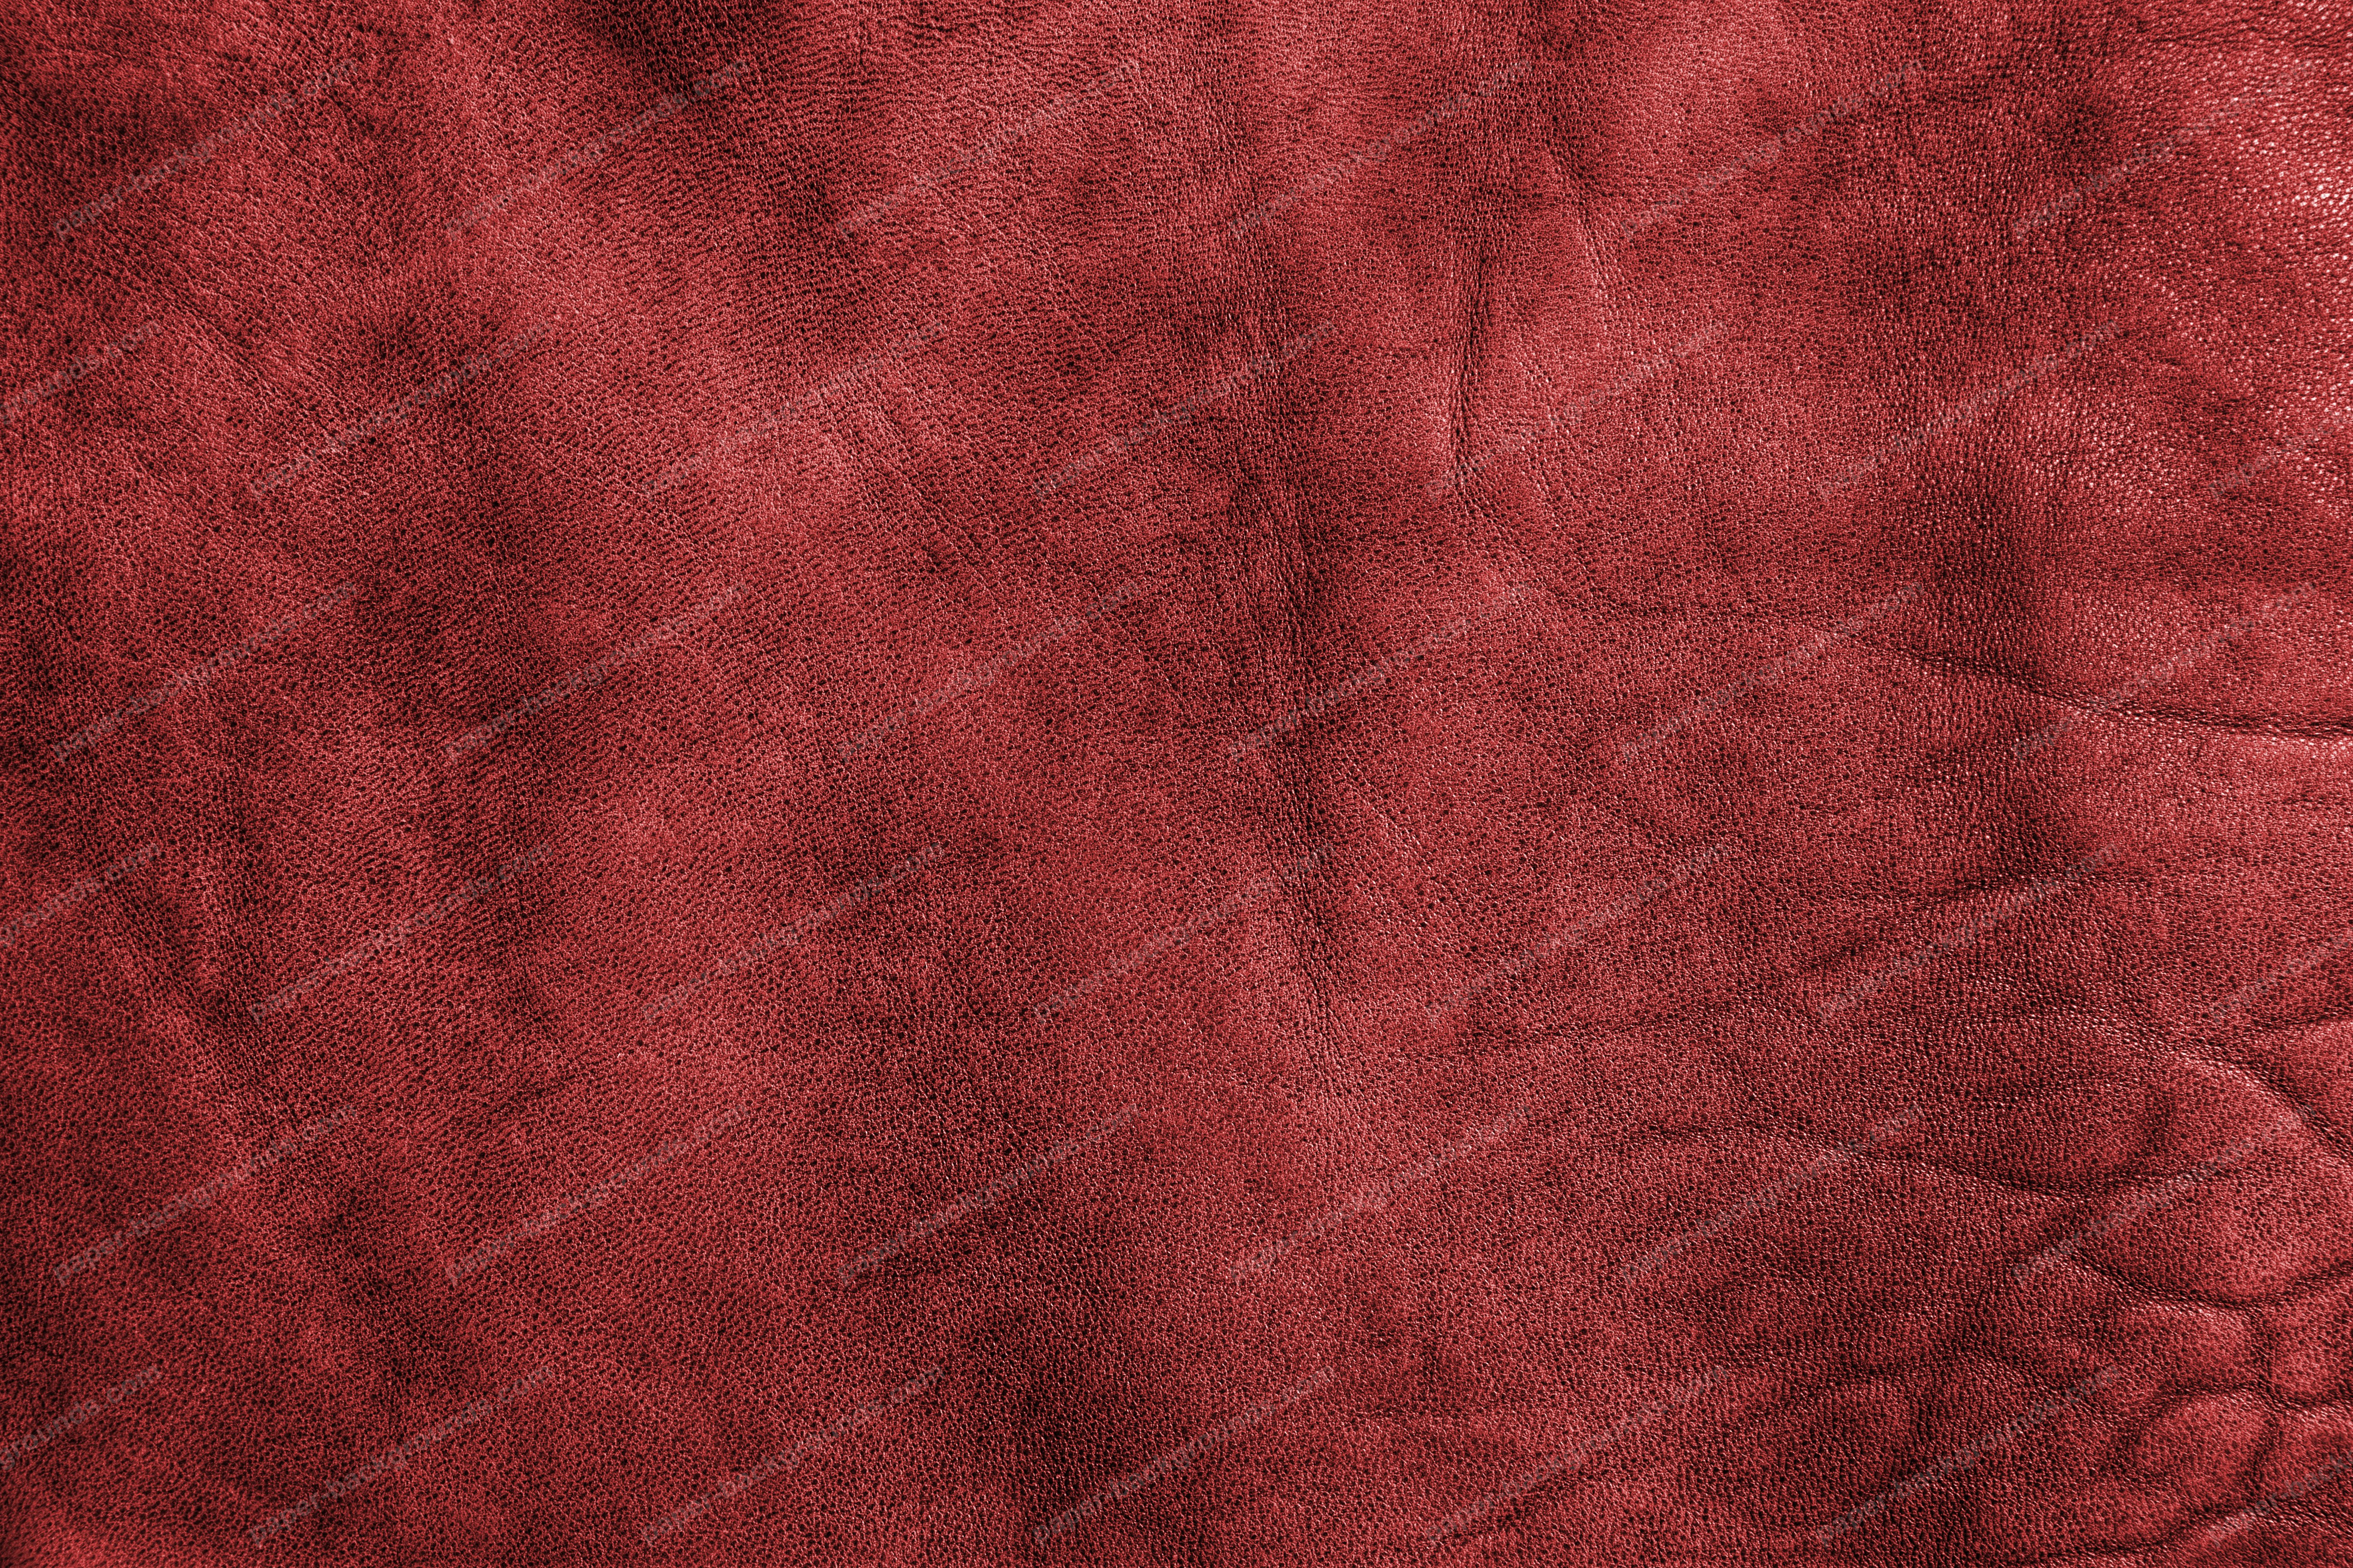 Red Vintage Leather Texture High Resolution